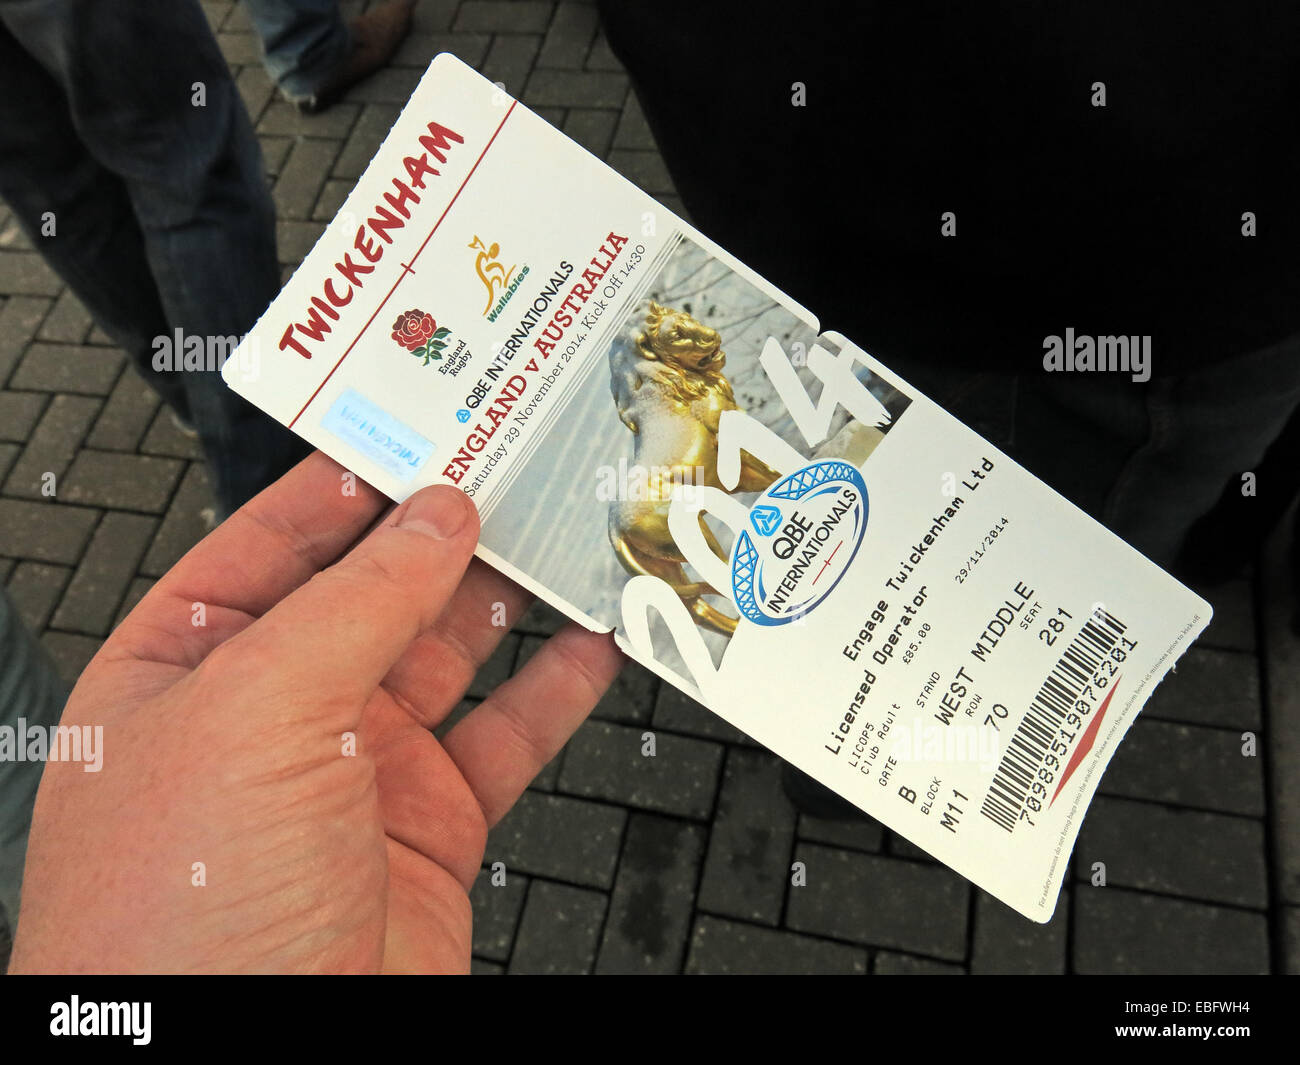 team,sport,stadium,programme,program,hospitality,stadia,stadium,ticket,hospitality,visit,trip,business,home,of,the,RFU,championship,champion,UK,GB,hand,holding,a,valid,v,verses,vs,Australia,bar,code,coded,barcode,barcoded,security,feature,features,forgery,official,gotonysmith,qbe,6nations,6,nations,six,tournament,sporting,venue,champions,united,Kingdom,Great,Britain,EnglandAustralia,international,Buy Pictures of,Buy Images Of